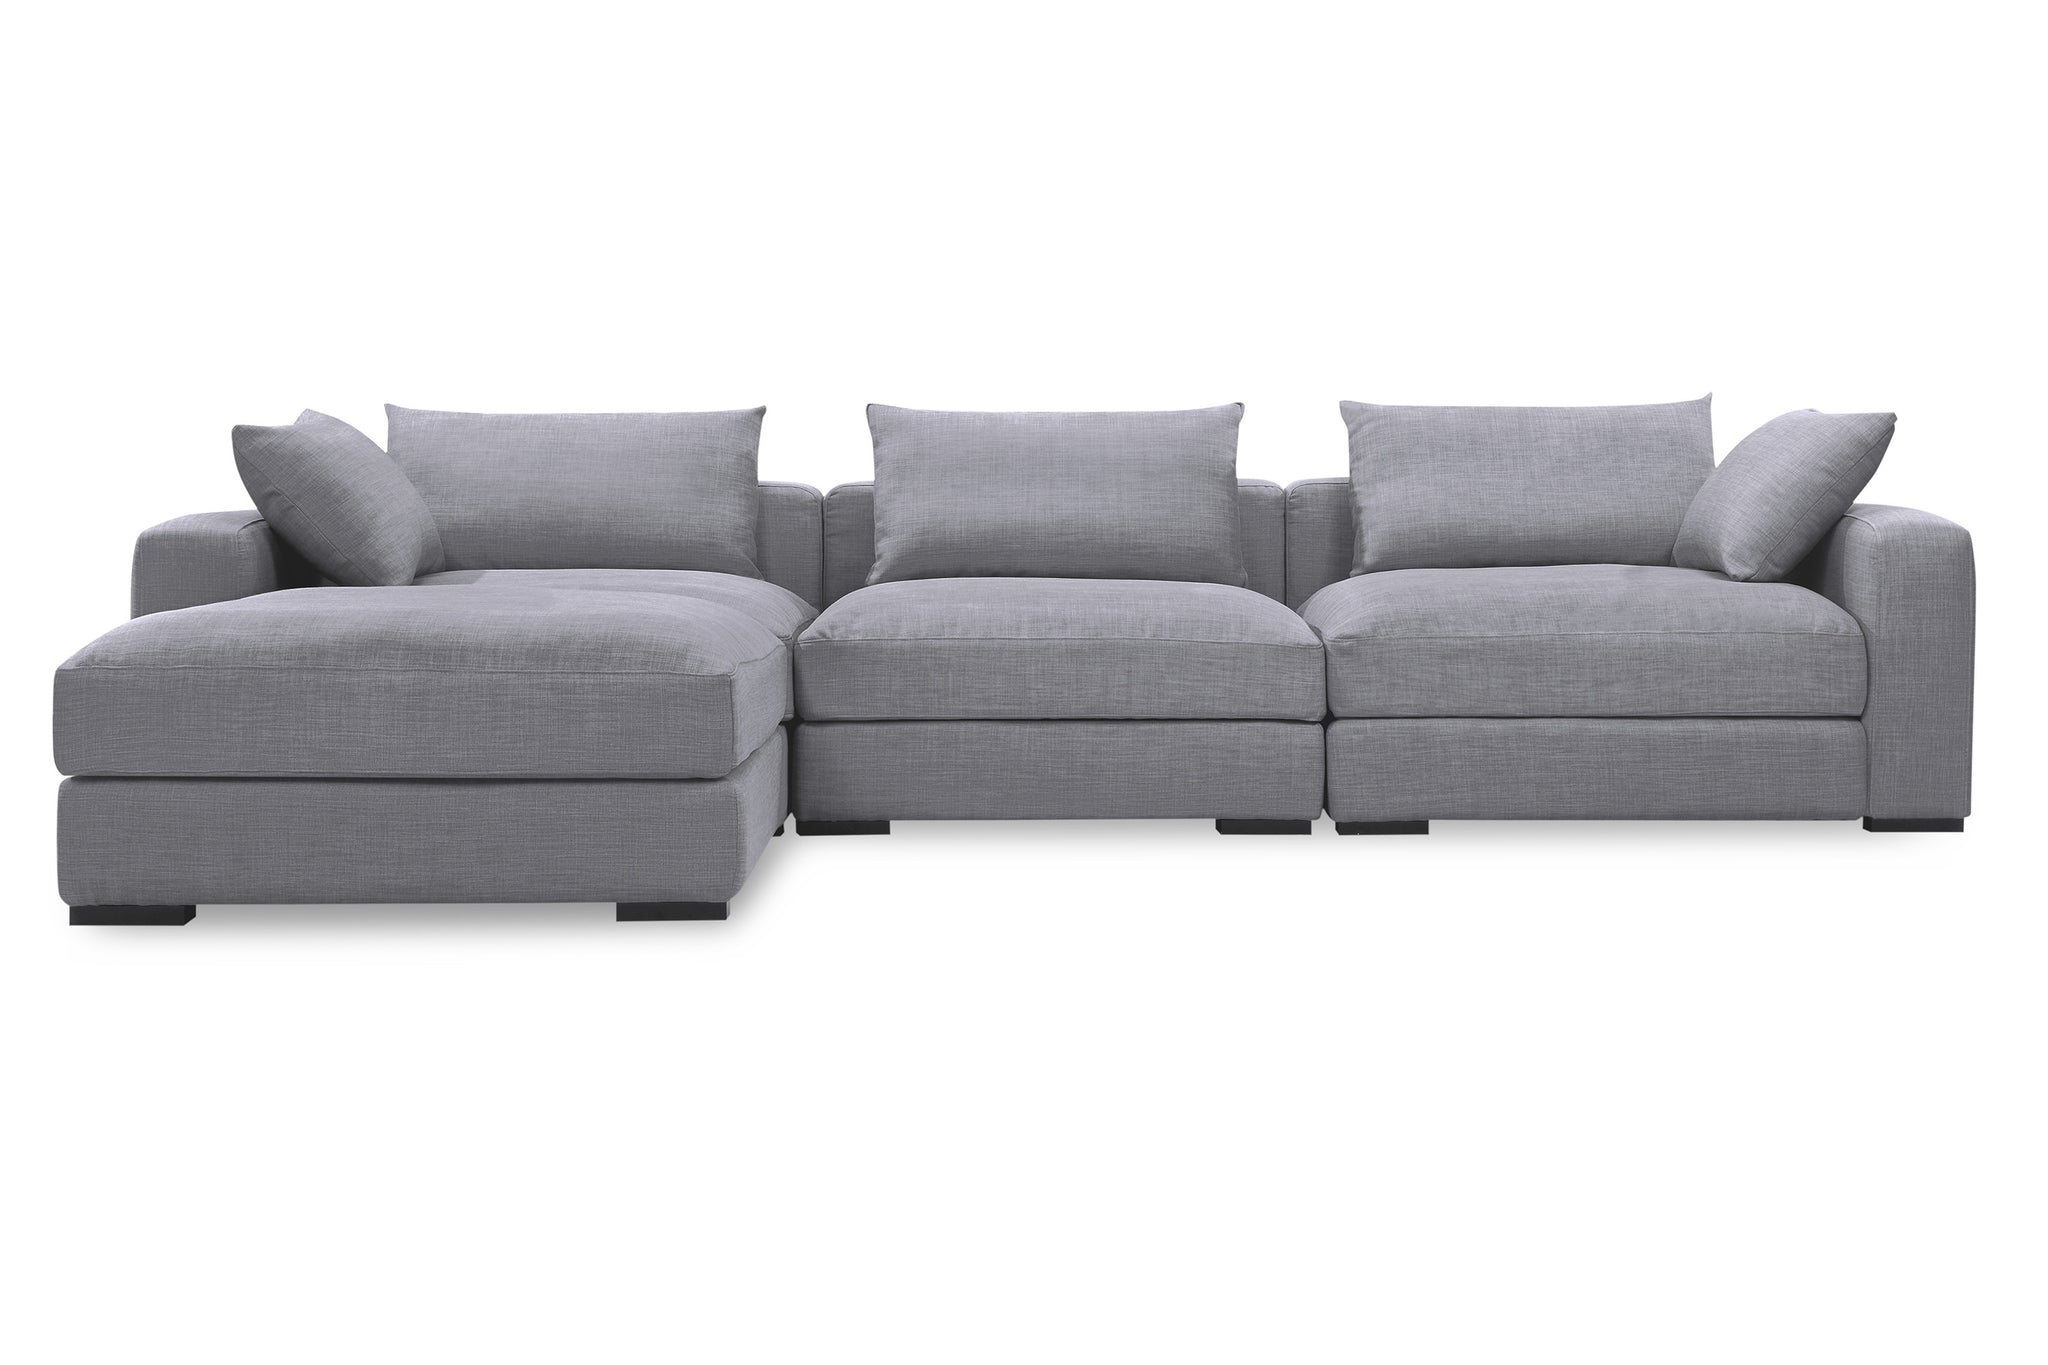 1038FTGRY,Remissa Sectional Sofa in Grey Tweed